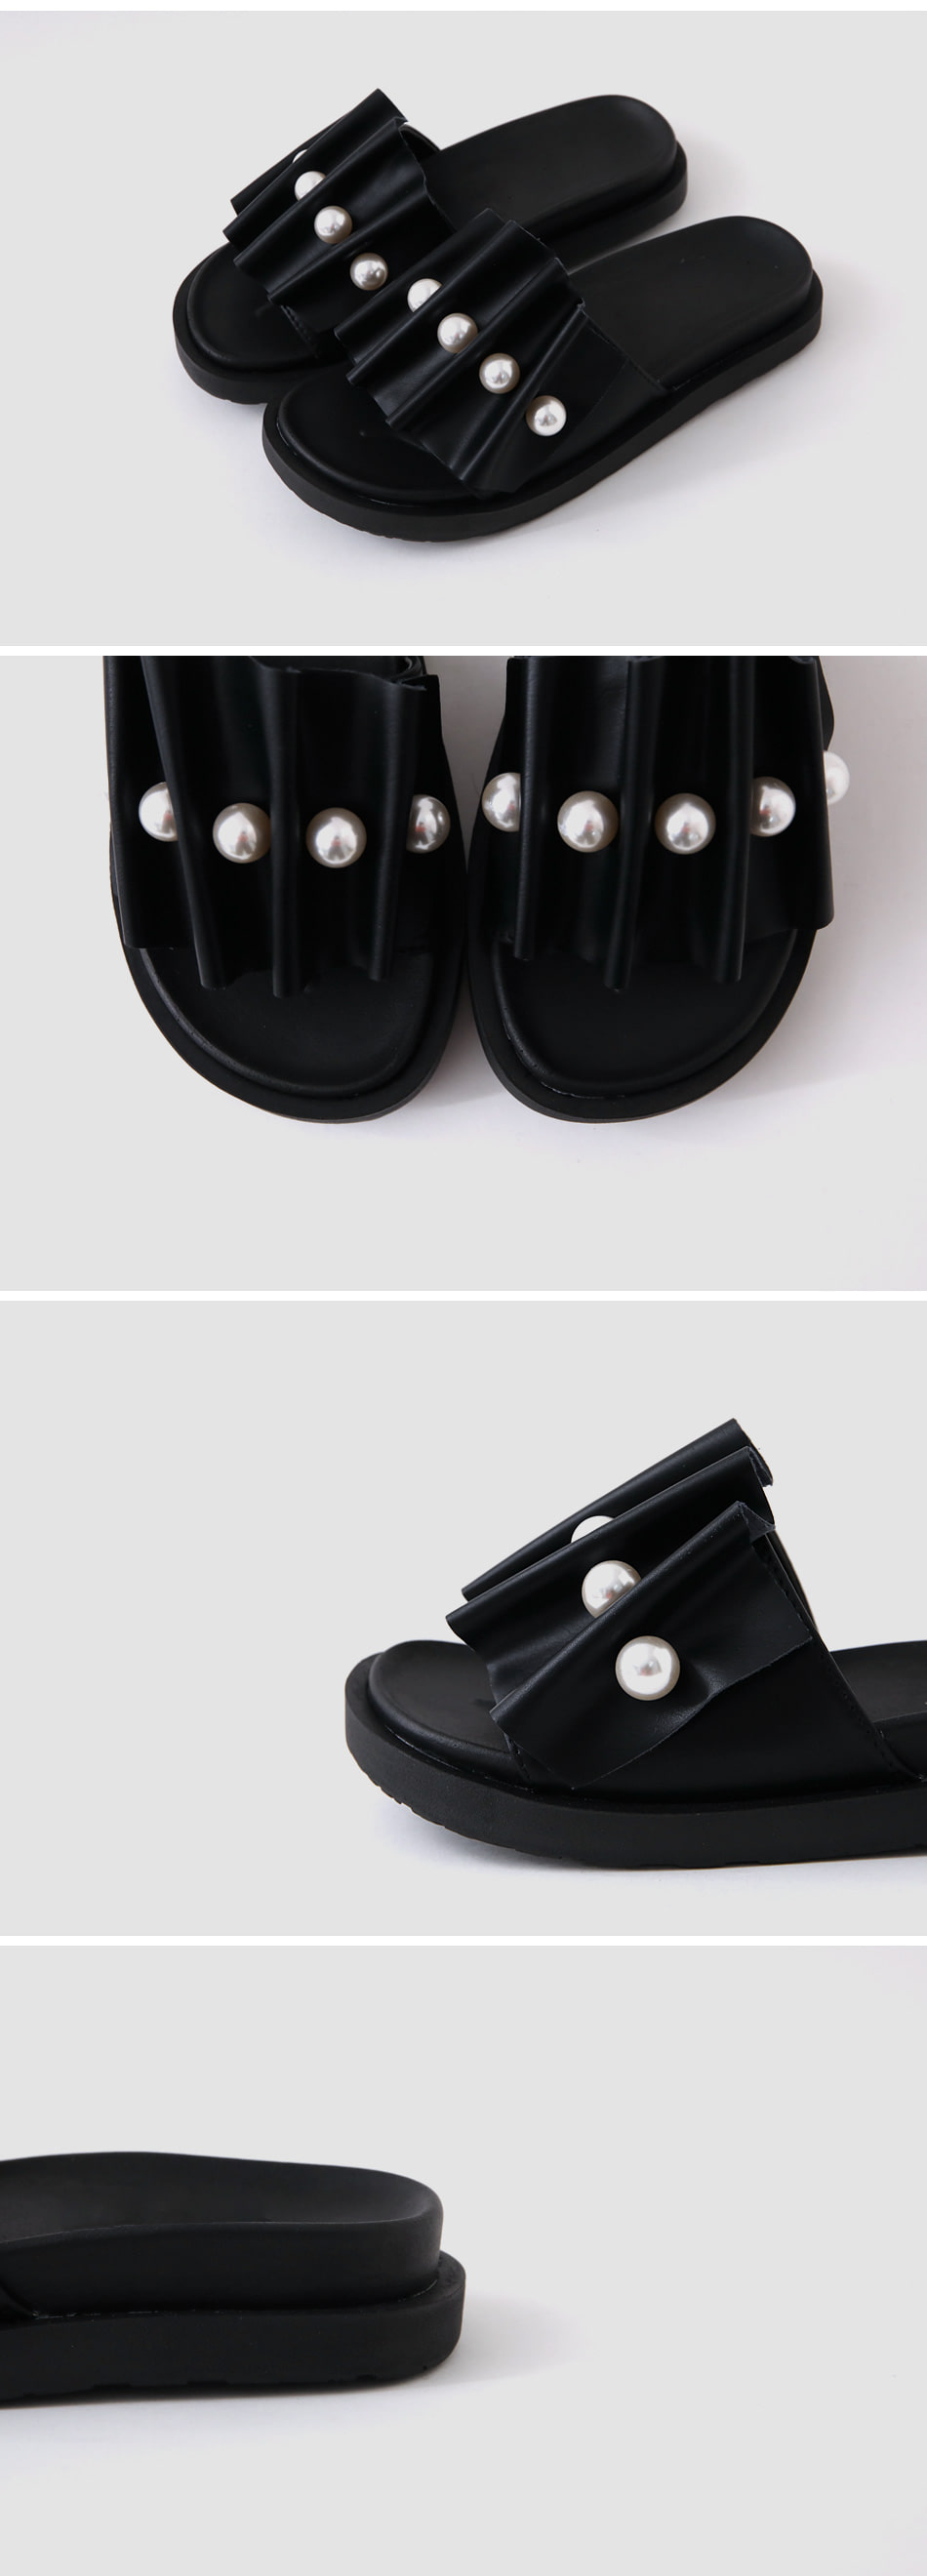 Petche slippers 3cm